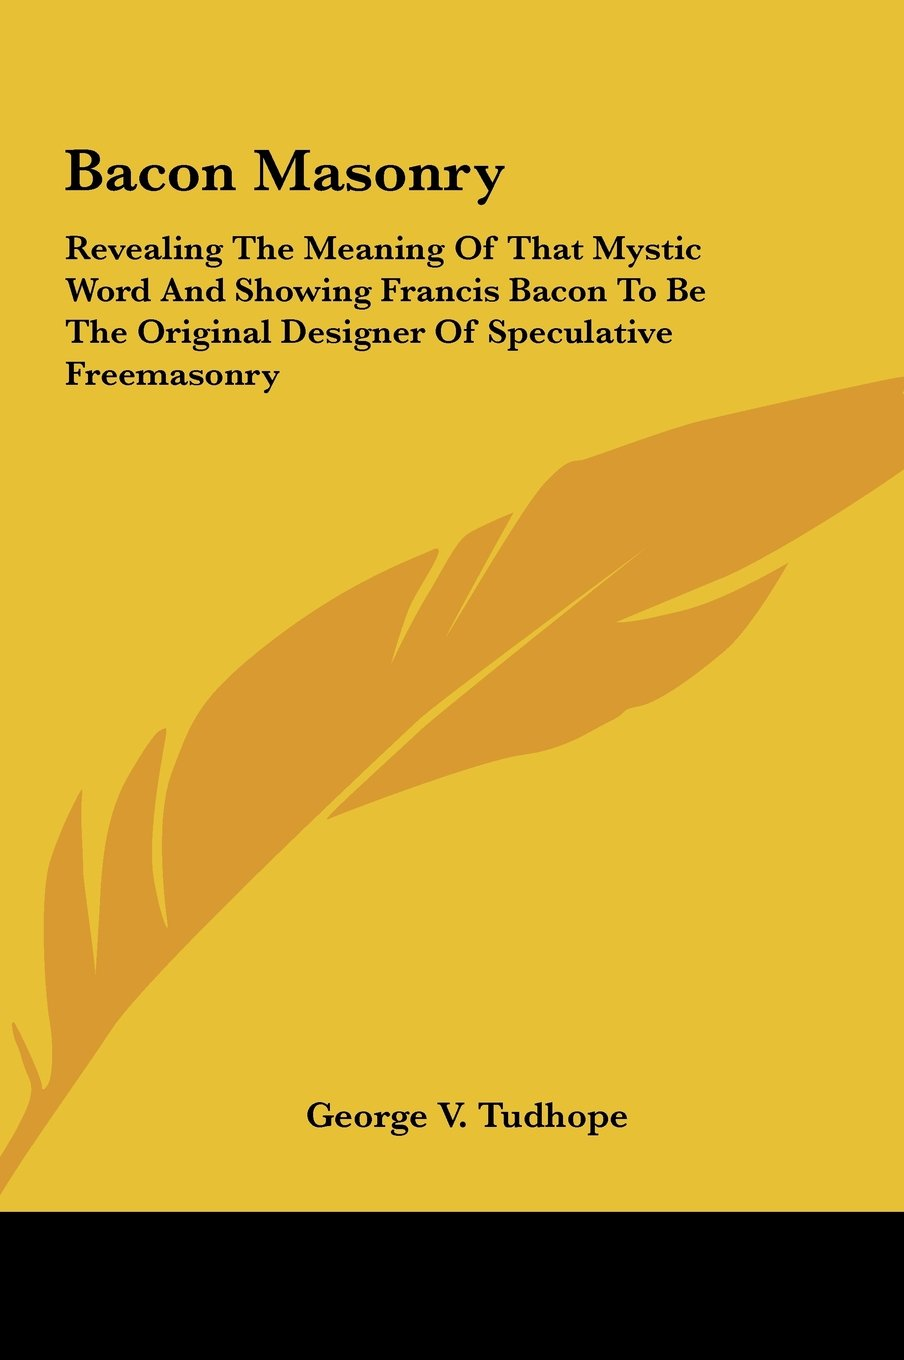 Bacon Masonry: Revealing The Meaning Of That Mystic Word And Showing Francis Bacon To Be The Original Designer Of Speculative Freemasonry pdf